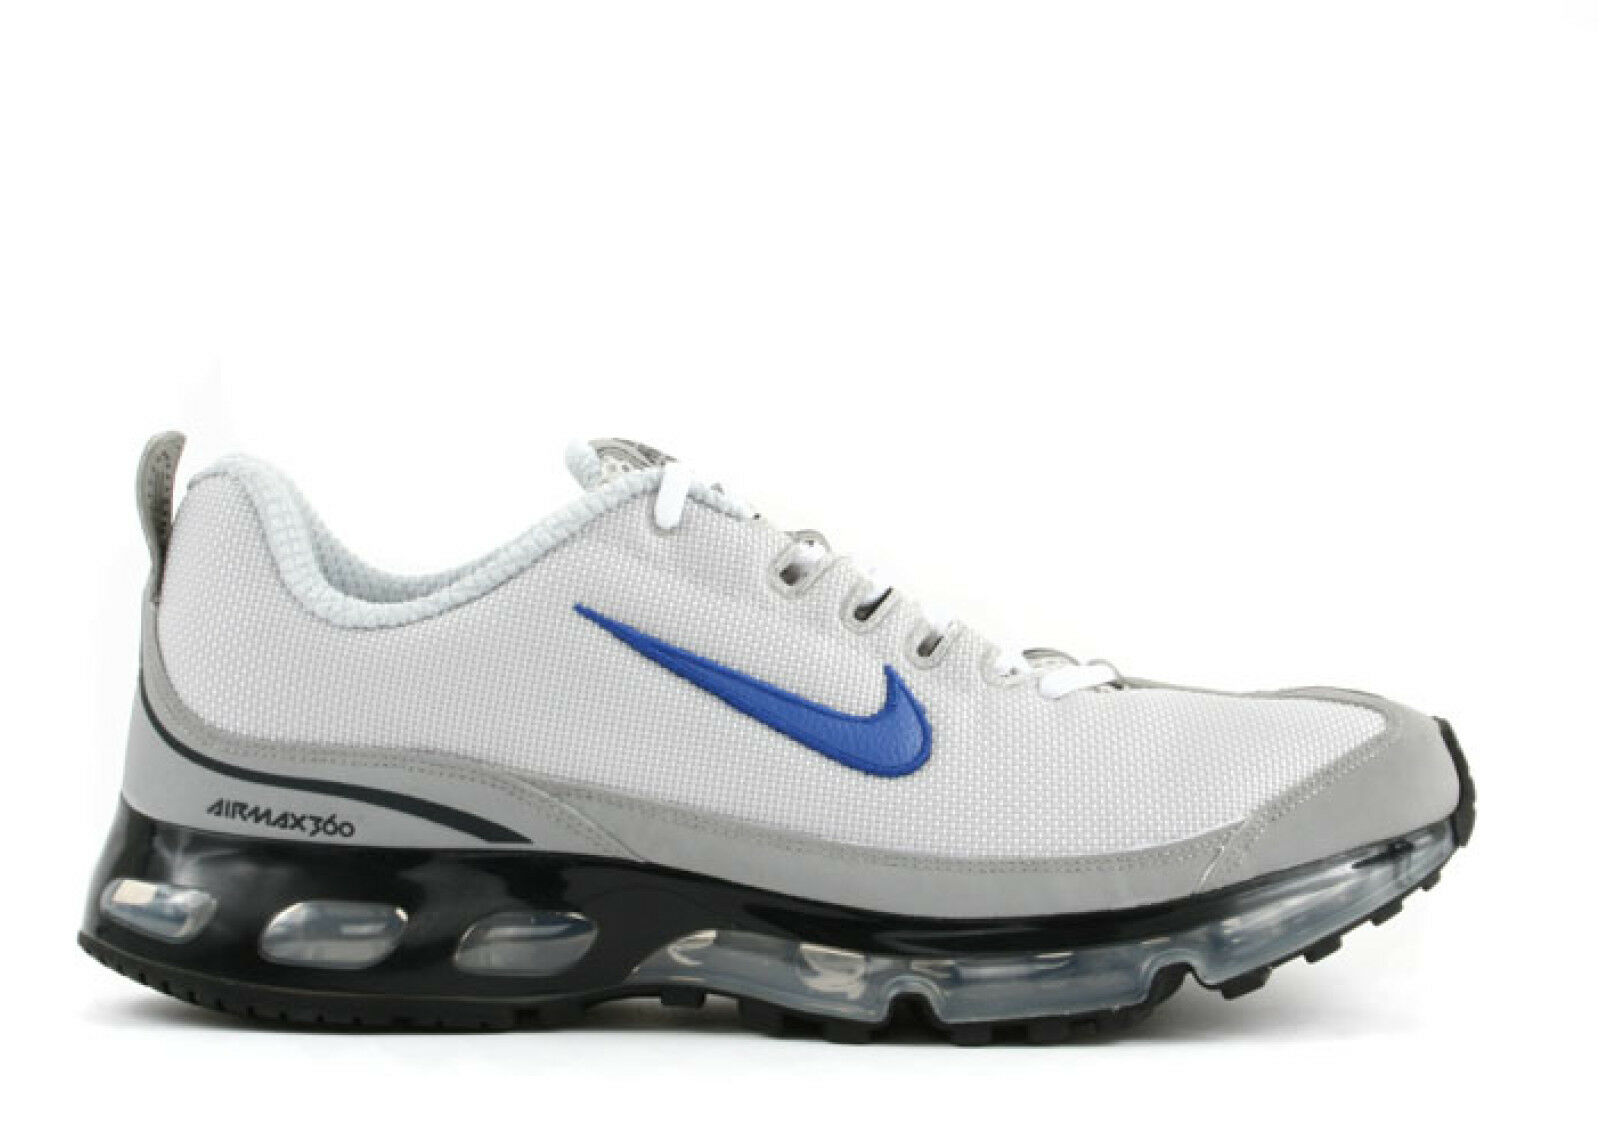 NIKE Air Max 360 Neu Gr 40 US 7 Sneaker NZ 90 95 97 Premium shoes MAX ULTRA